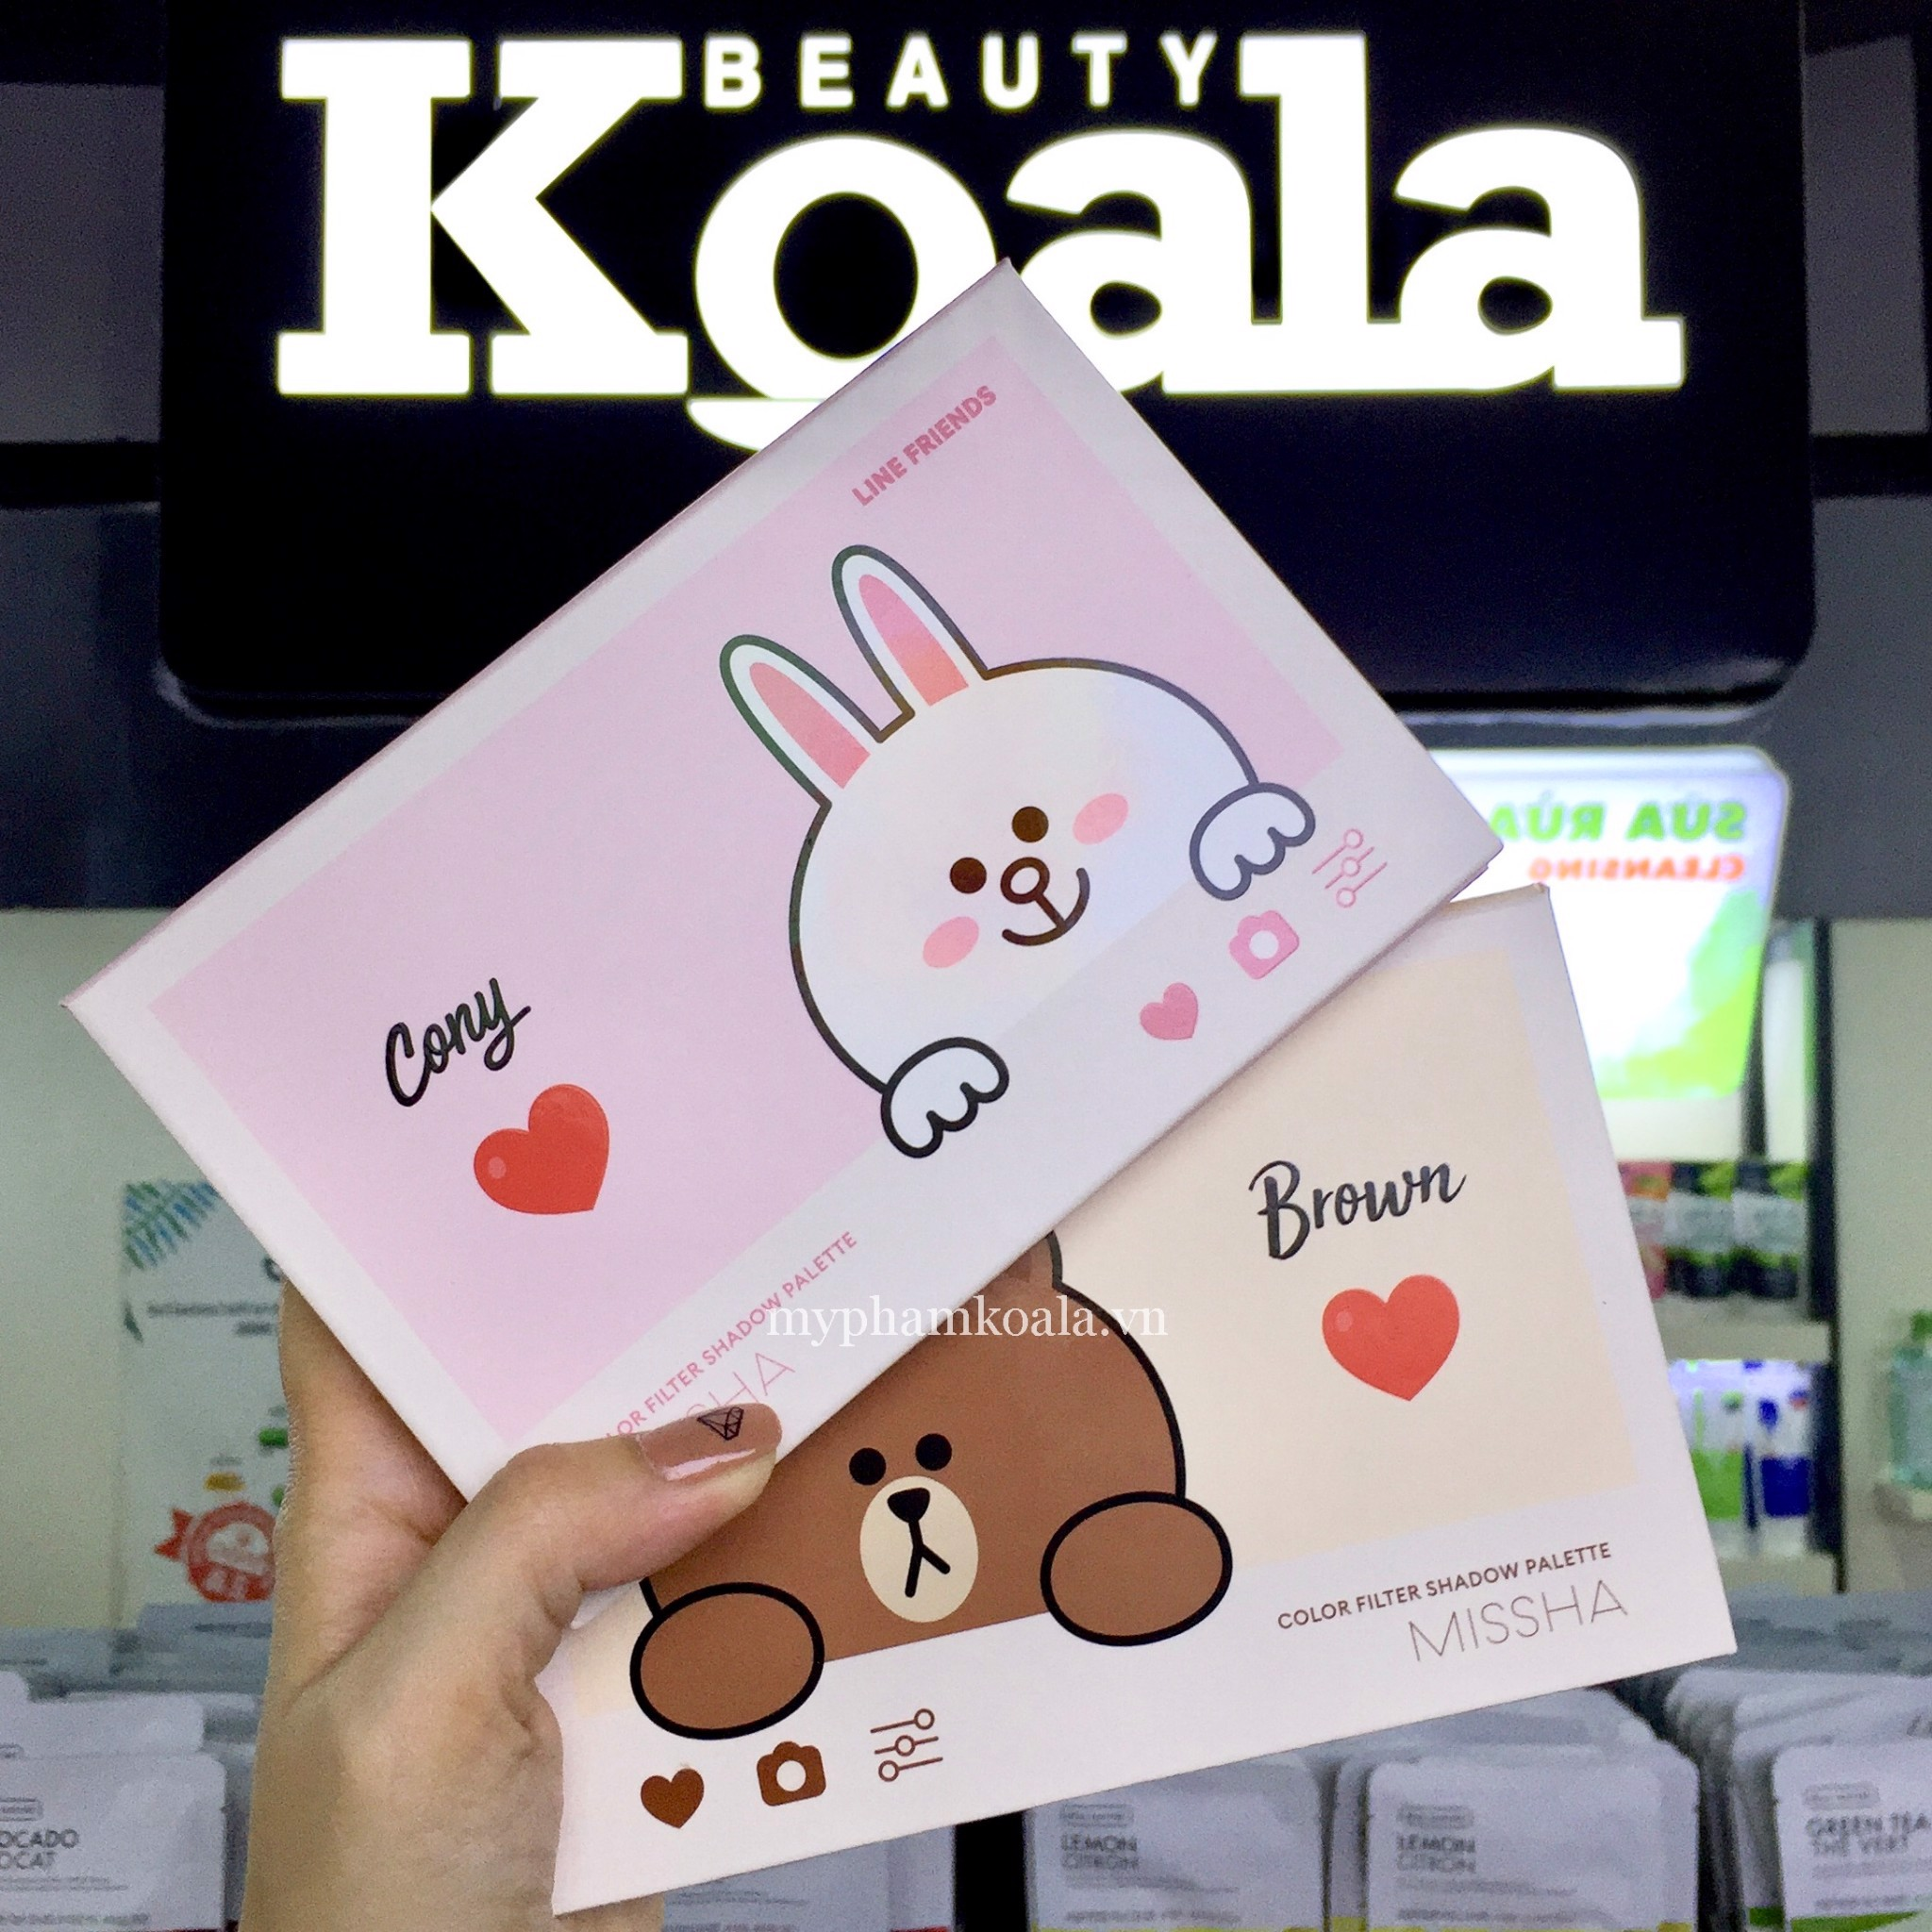 Màu Mắt Missha Line Friends Color Fitter Shadow Palette